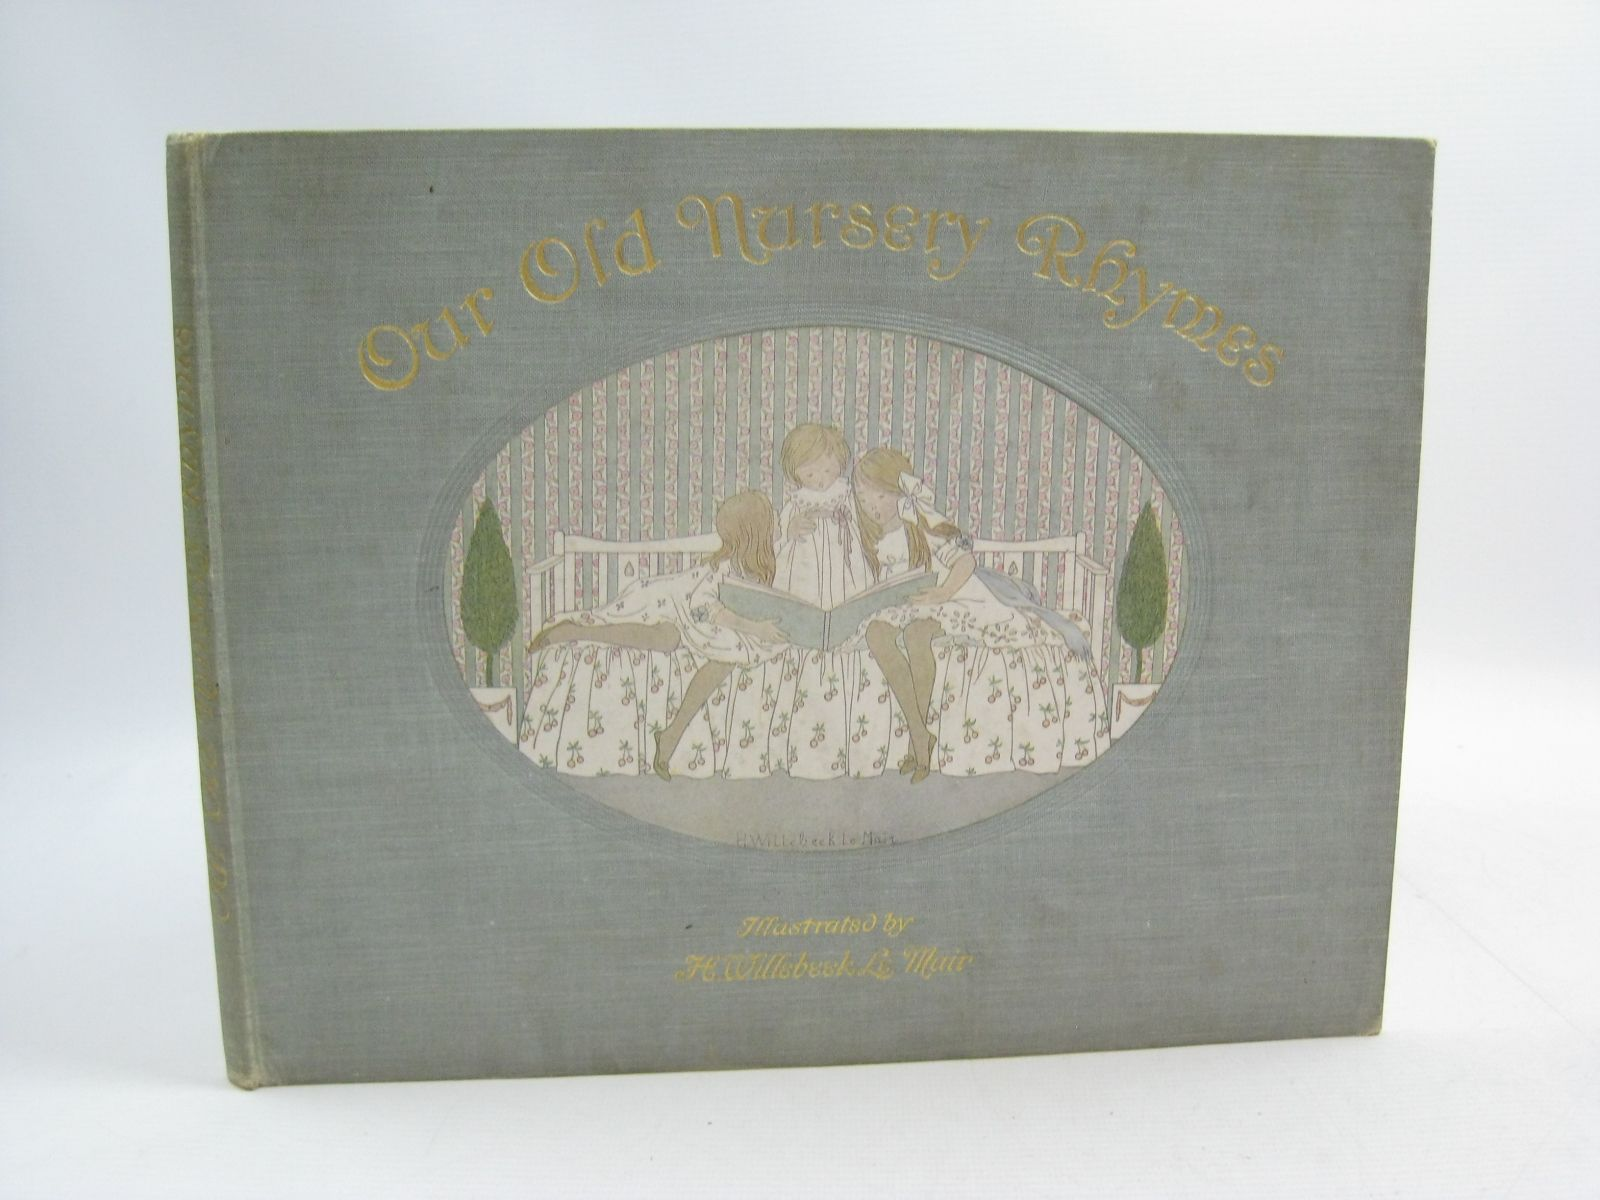 Photo of OUR OLD NURSERY RHYMES written by Moffat, Alfred illustrated by Willebeek Le Mair, Henriette published by Augener Ltd. (STOCK CODE: 1314991)  for sale by Stella & Rose's Books